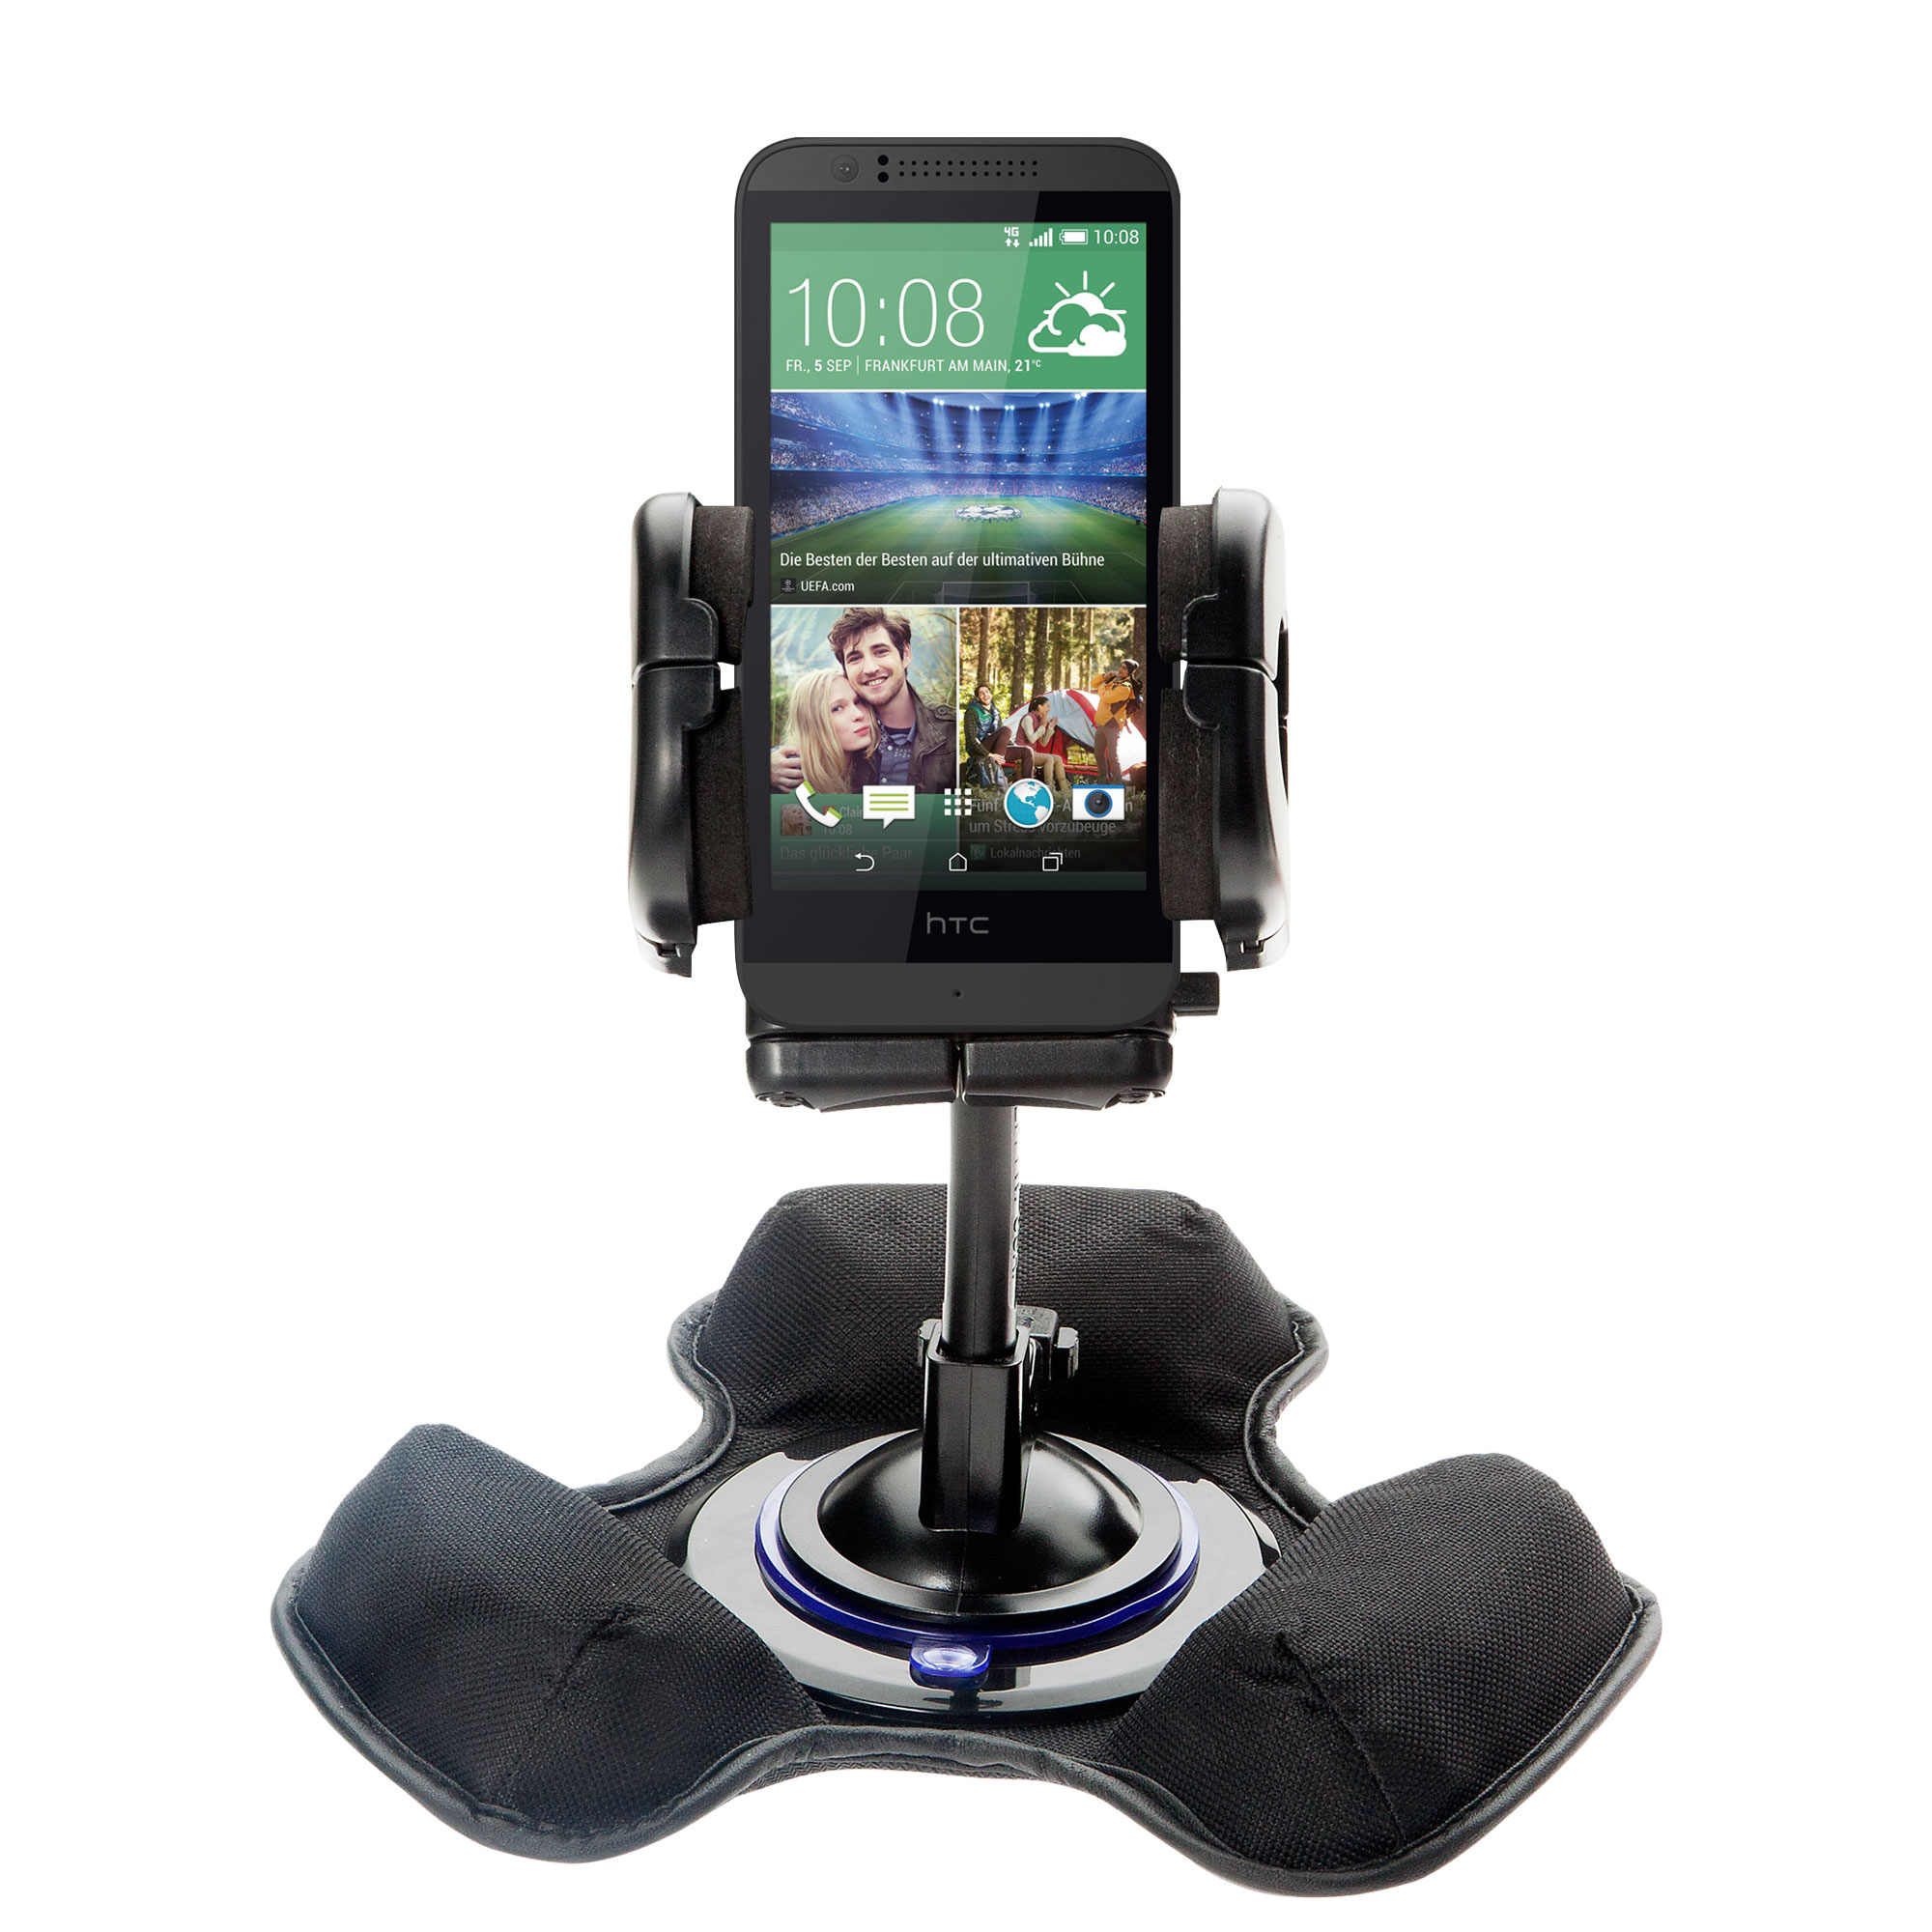 Dash and Windshield Holder compatible with the HTC Desire 320